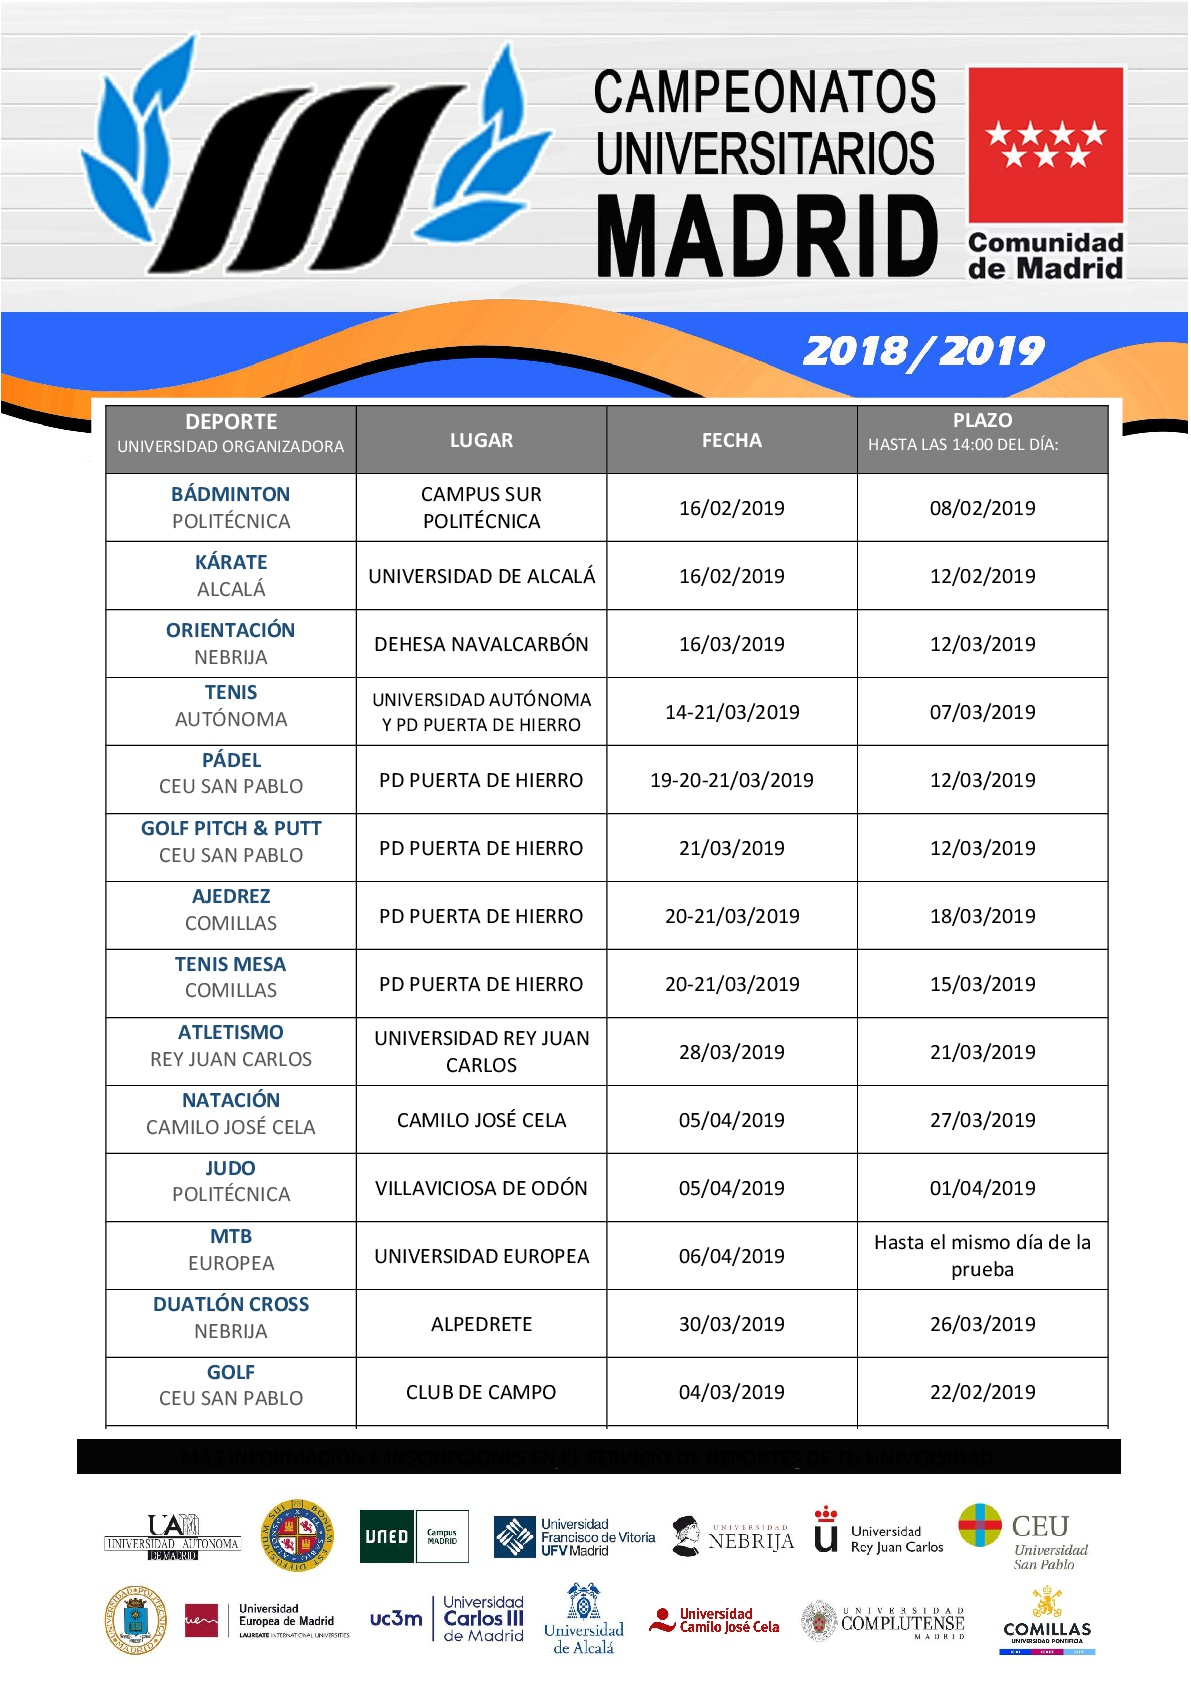 Campeonatos Universitarios Madrid